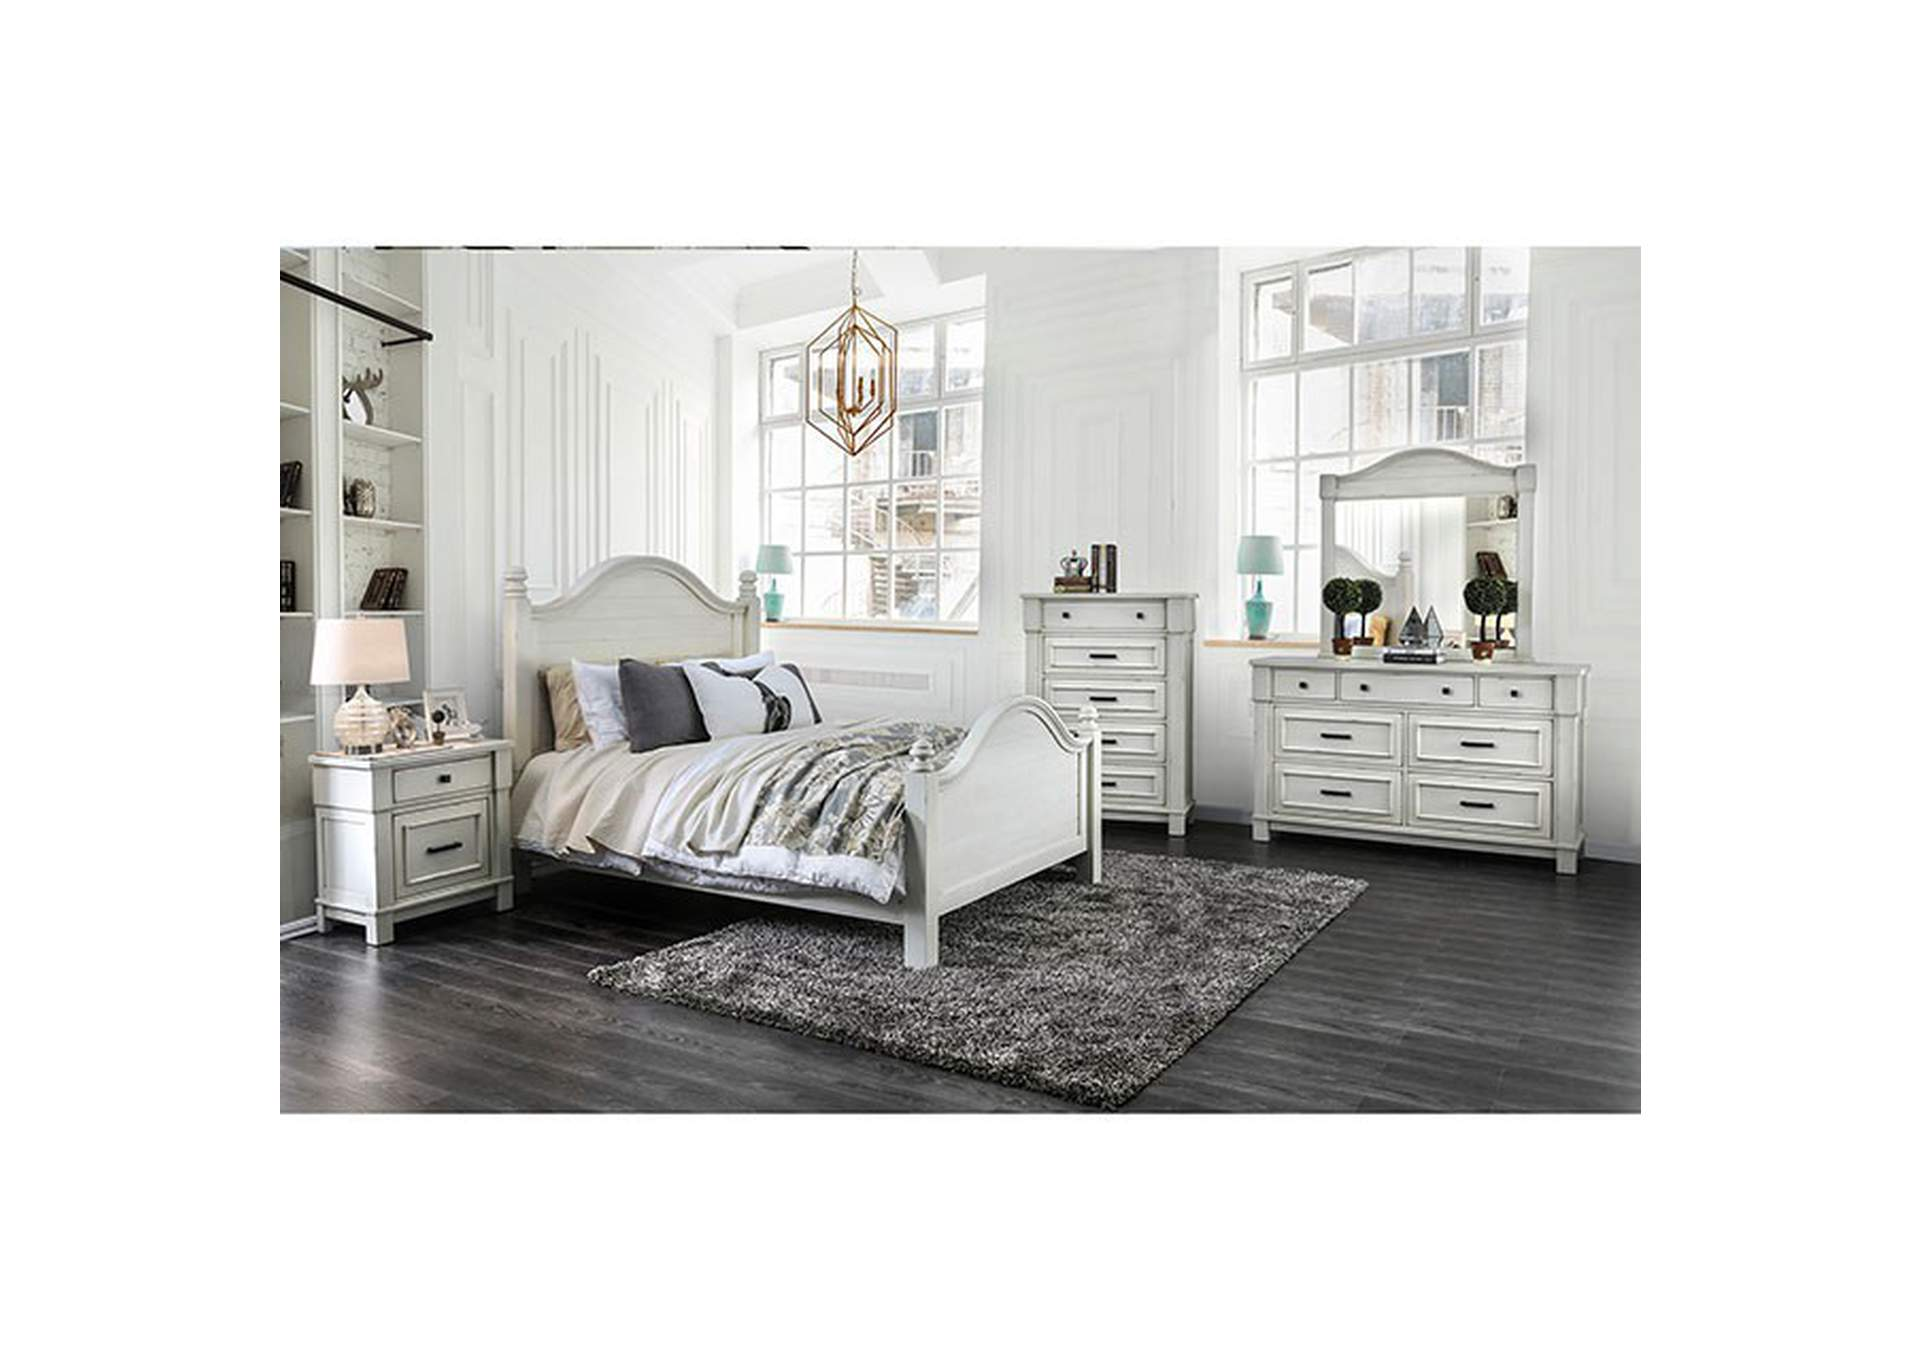 Daria Antique White Camelback Queen Panel Bed,Furniture of America